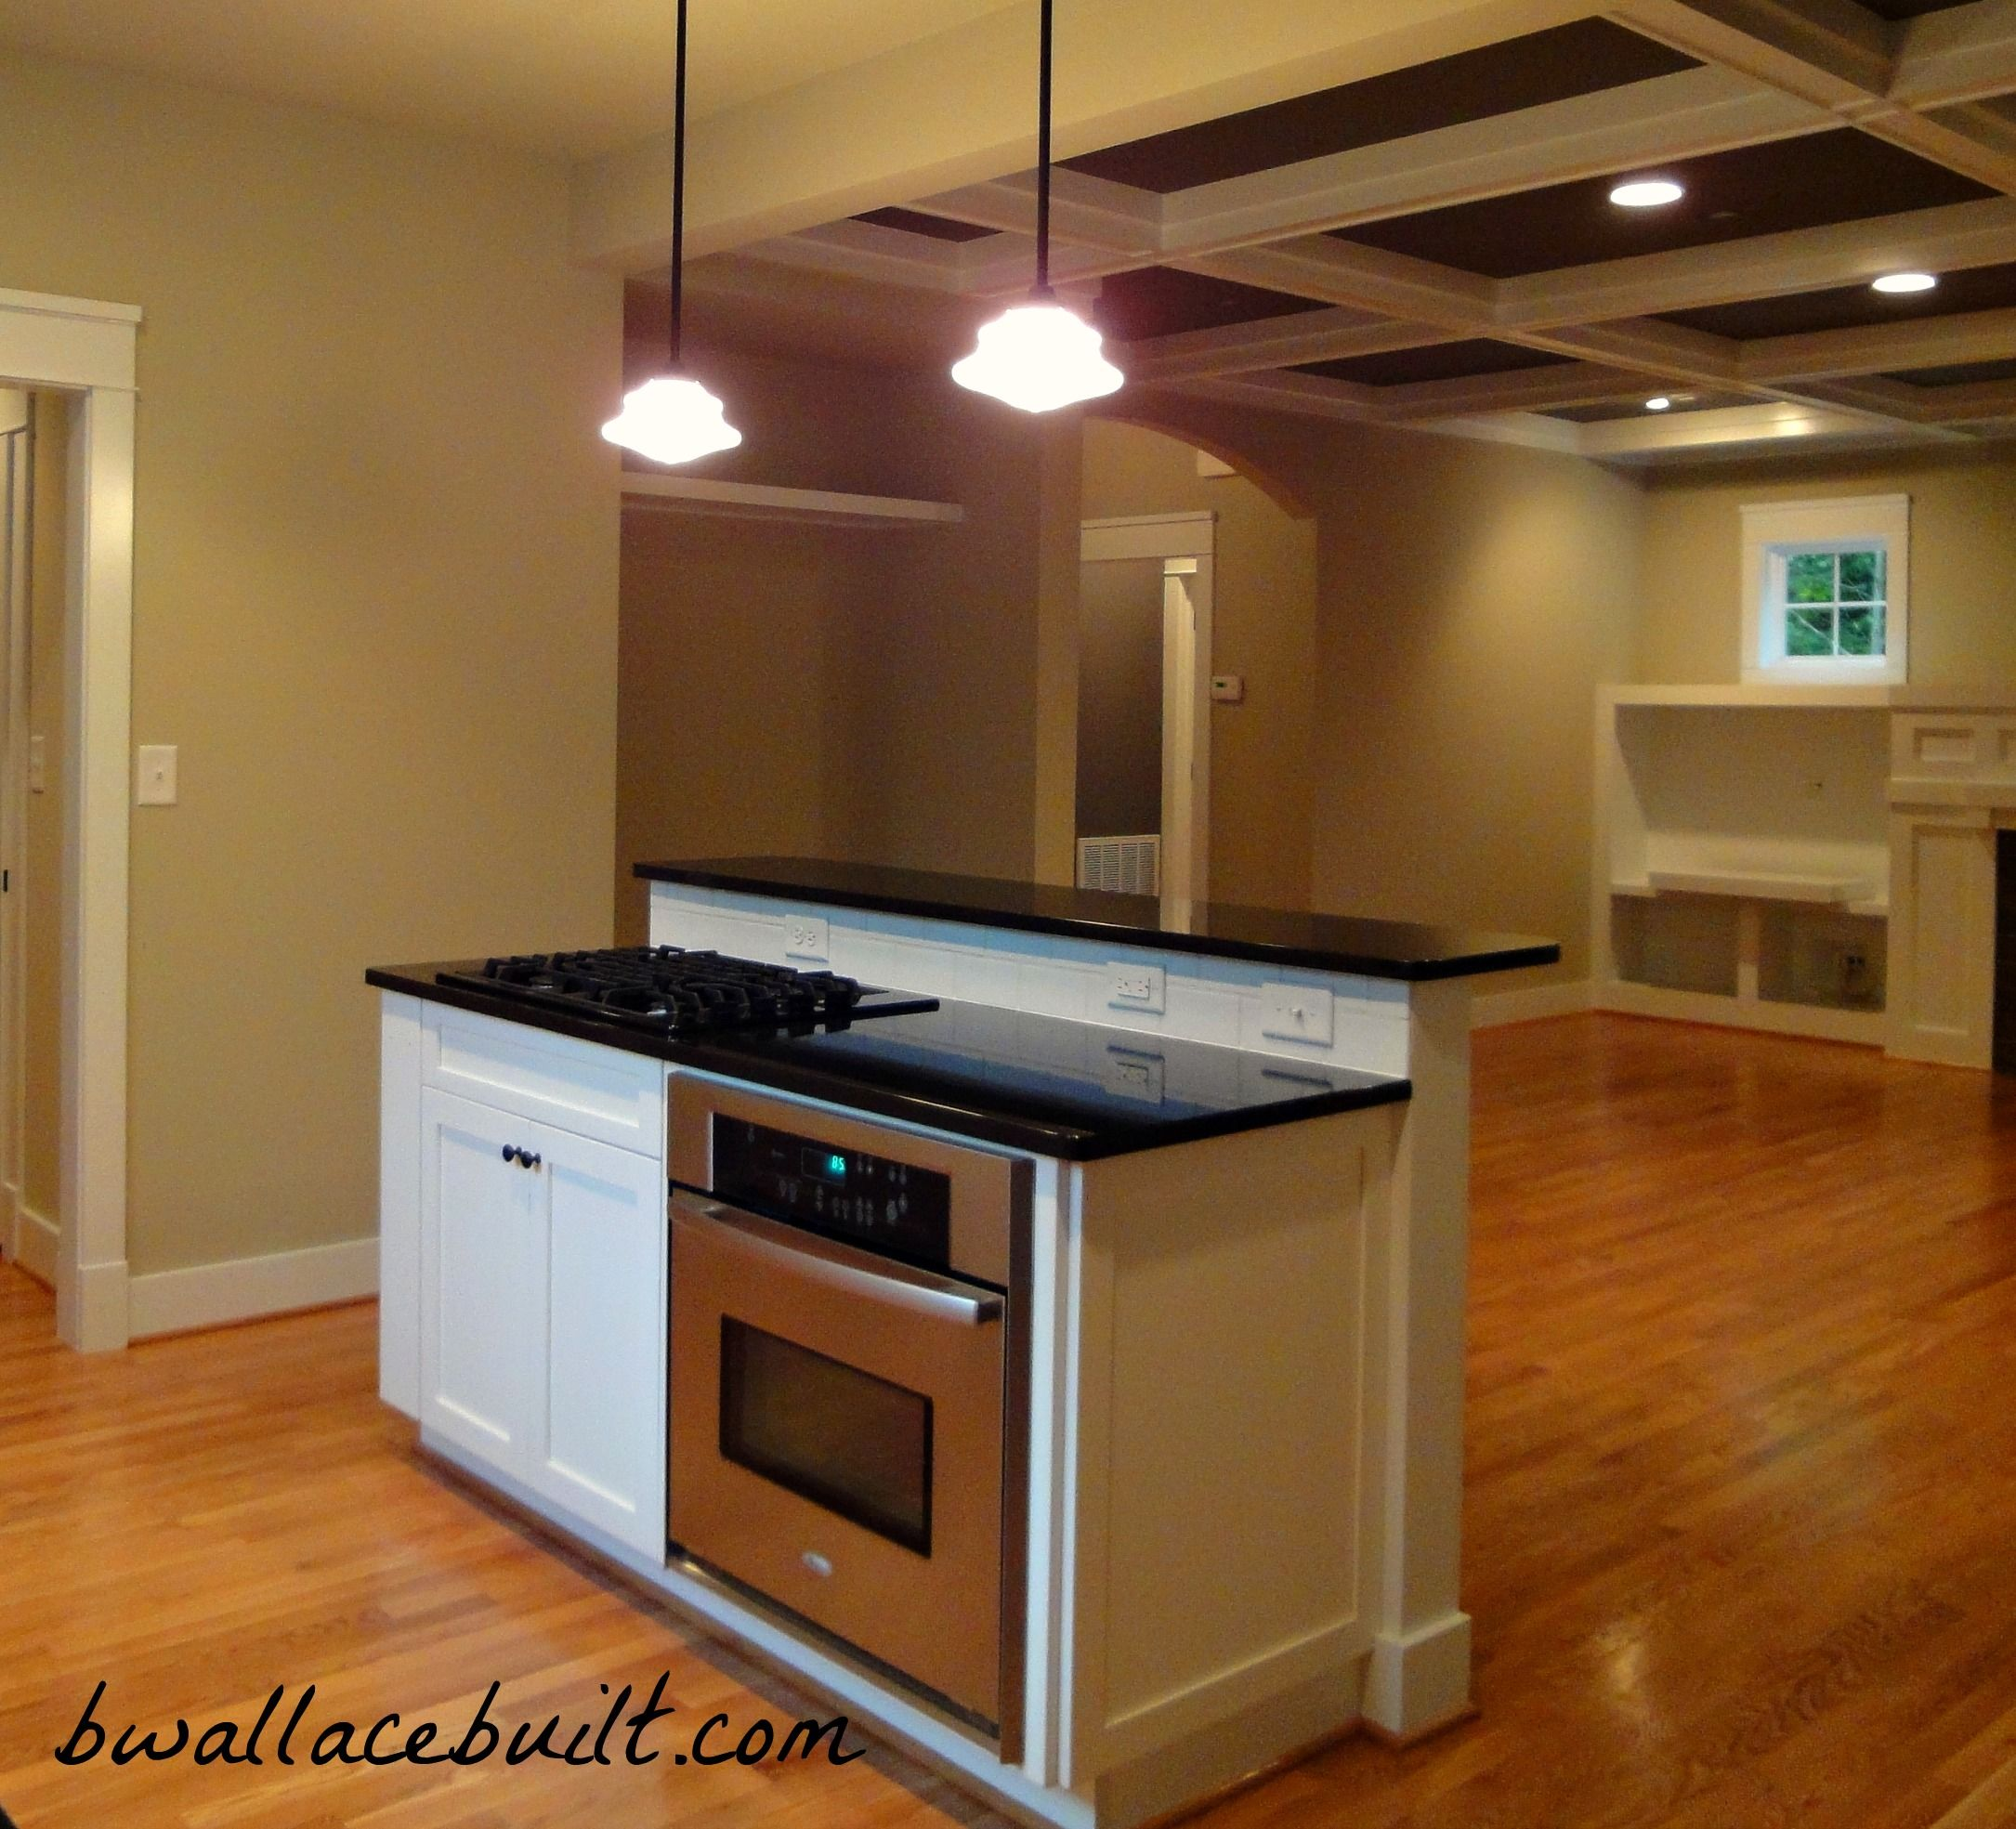 Small Kitchen Island With Stove And Oven Home Design Ideas